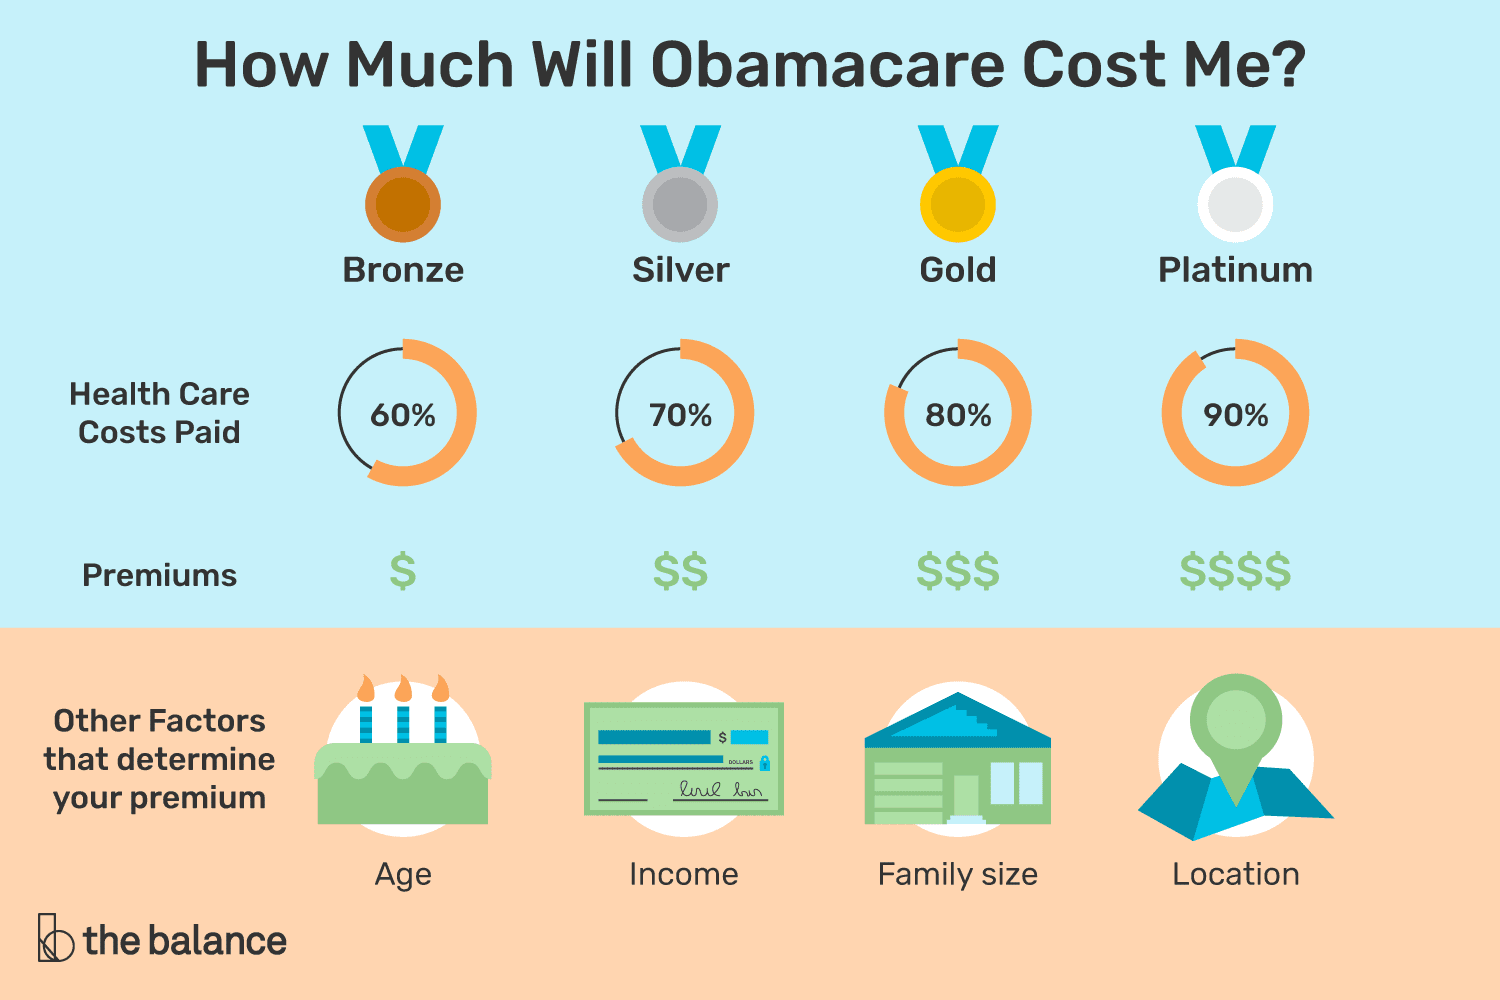 How Much Will Obamacare Cost Me